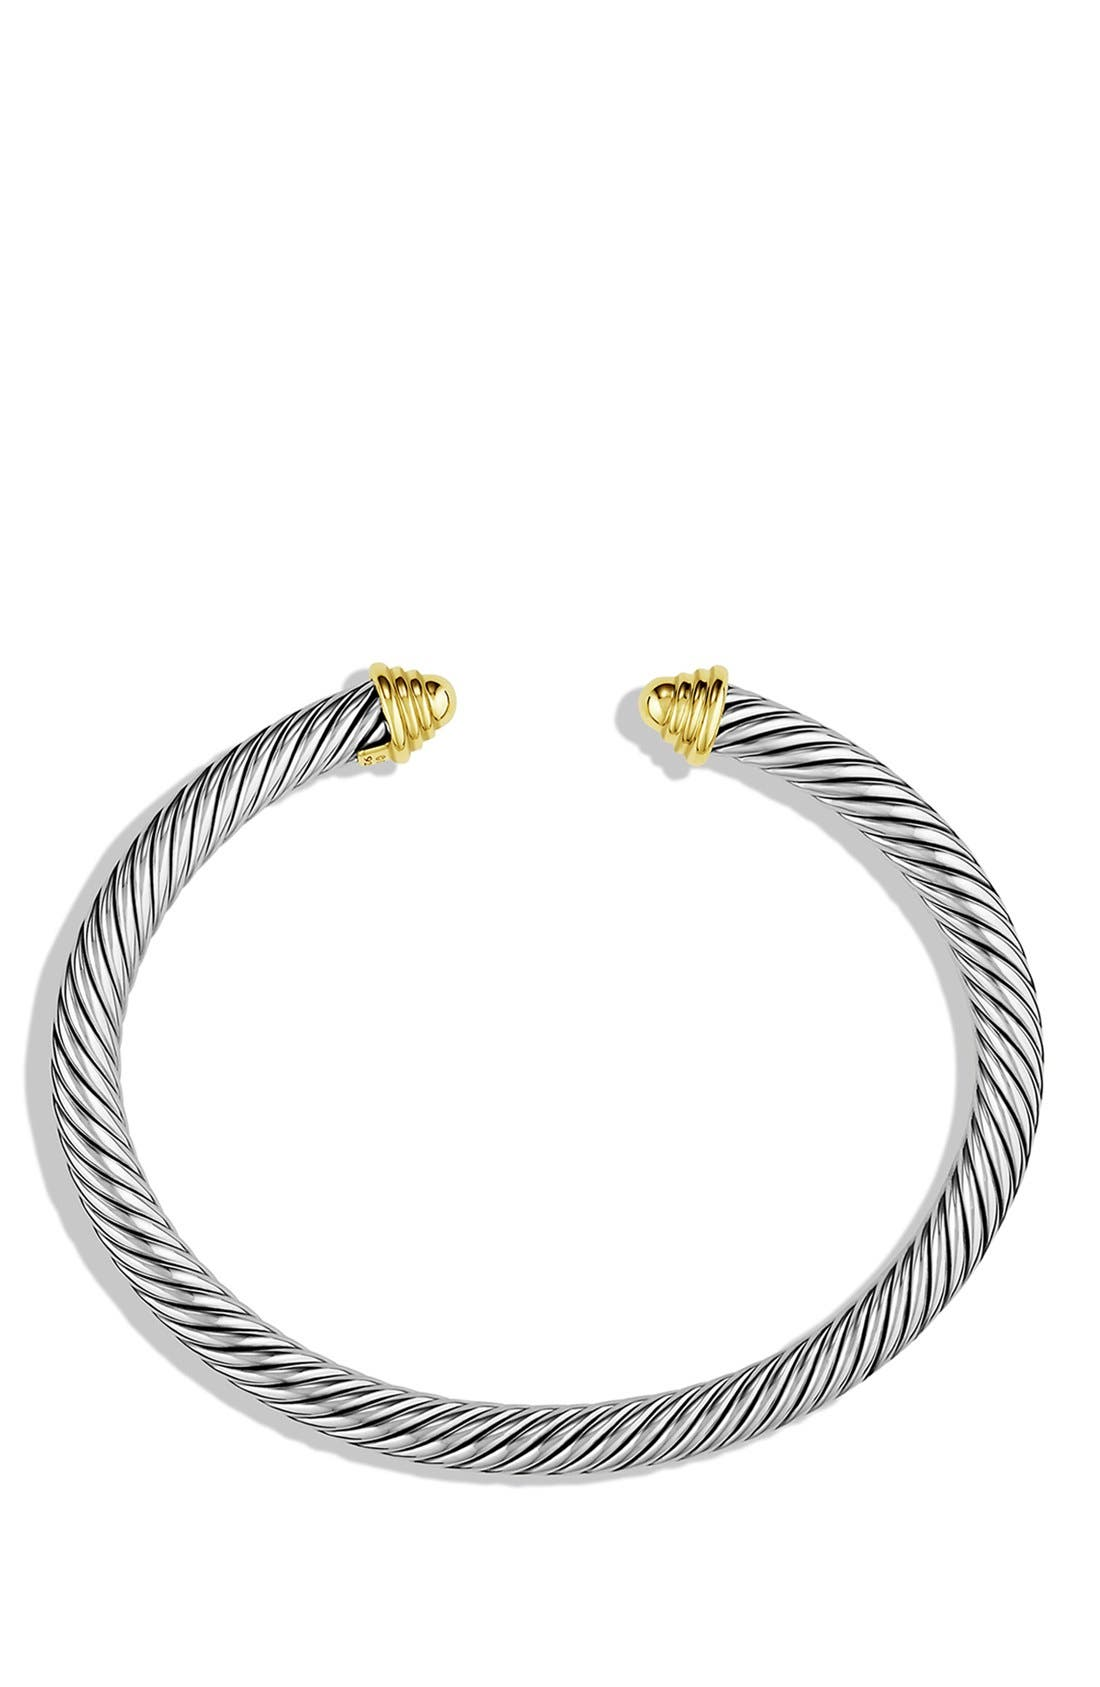 DAVID YURMAN, Cable Classics Bracelet with 14K Gold, 5mm, Alternate thumbnail 3, color, TWO TONE